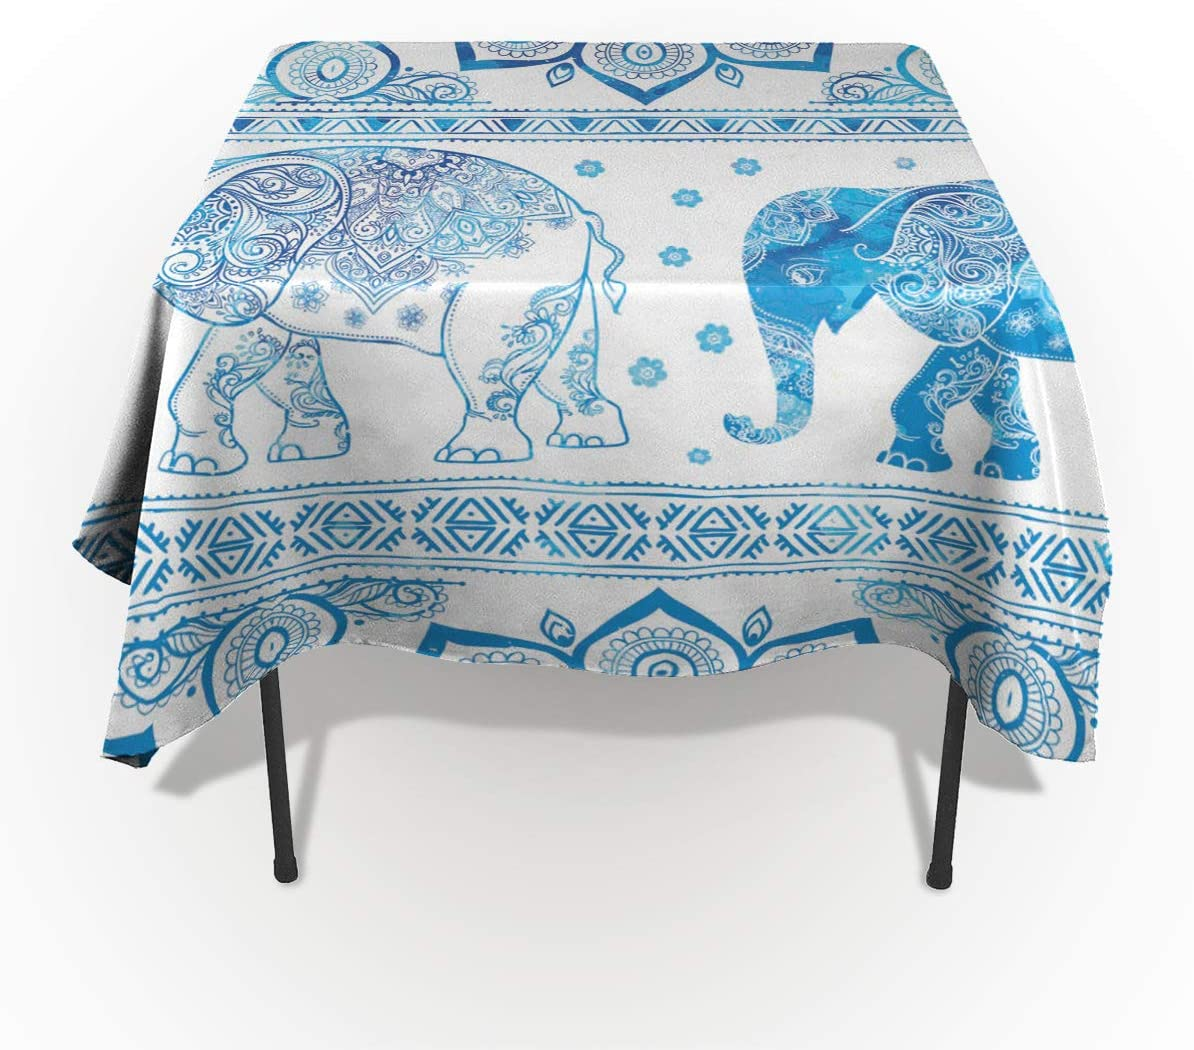 BMALL Cotton Linen Tablecloth Blue Mandara Elephant Table Cover for Kitchen Dinning Tabletop Decoration 60x90inch